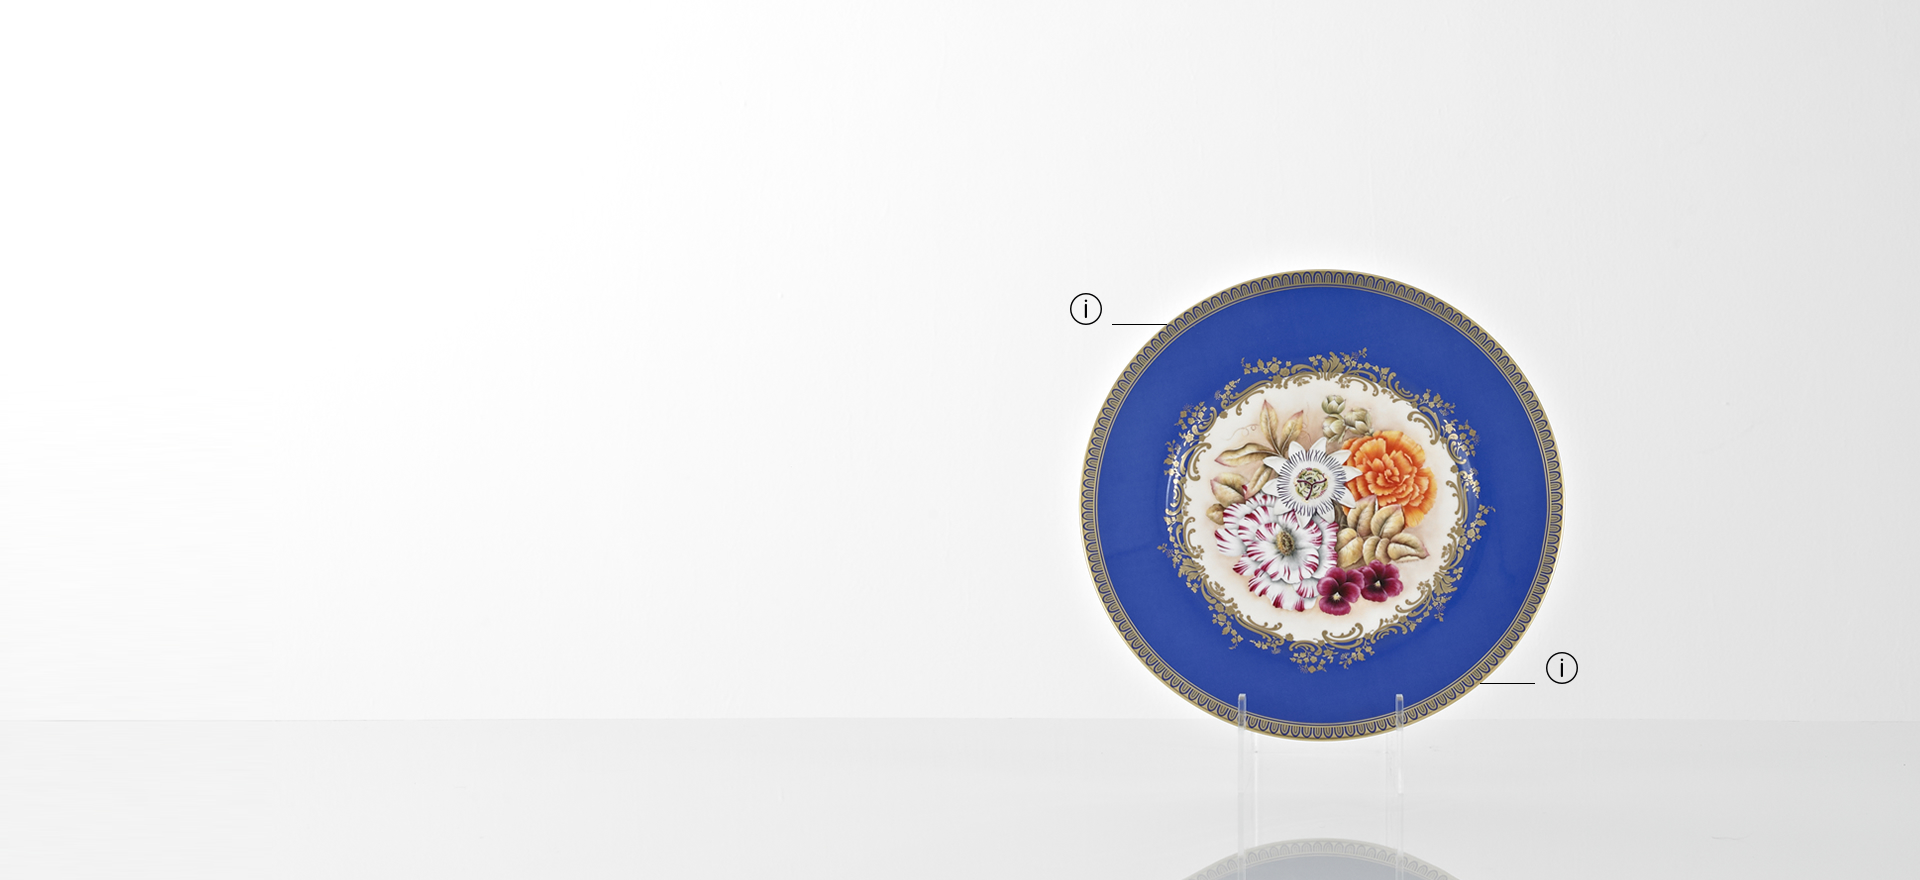 British Luxury Ceramics Floral Service Plate